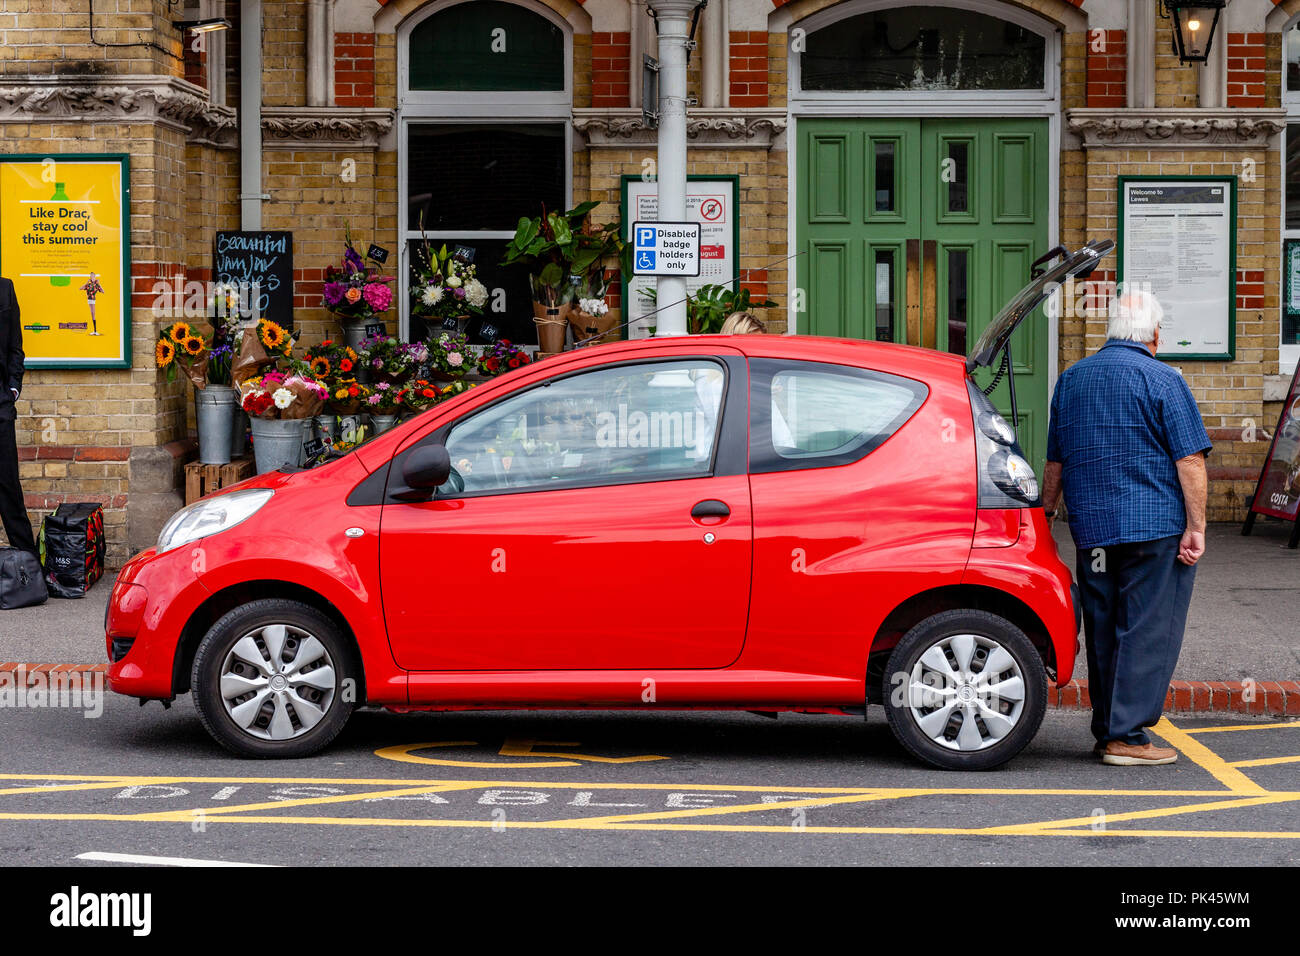 A Car Parked In A Disabled Bay, Lewes, East Sussex, UK - Stock Image